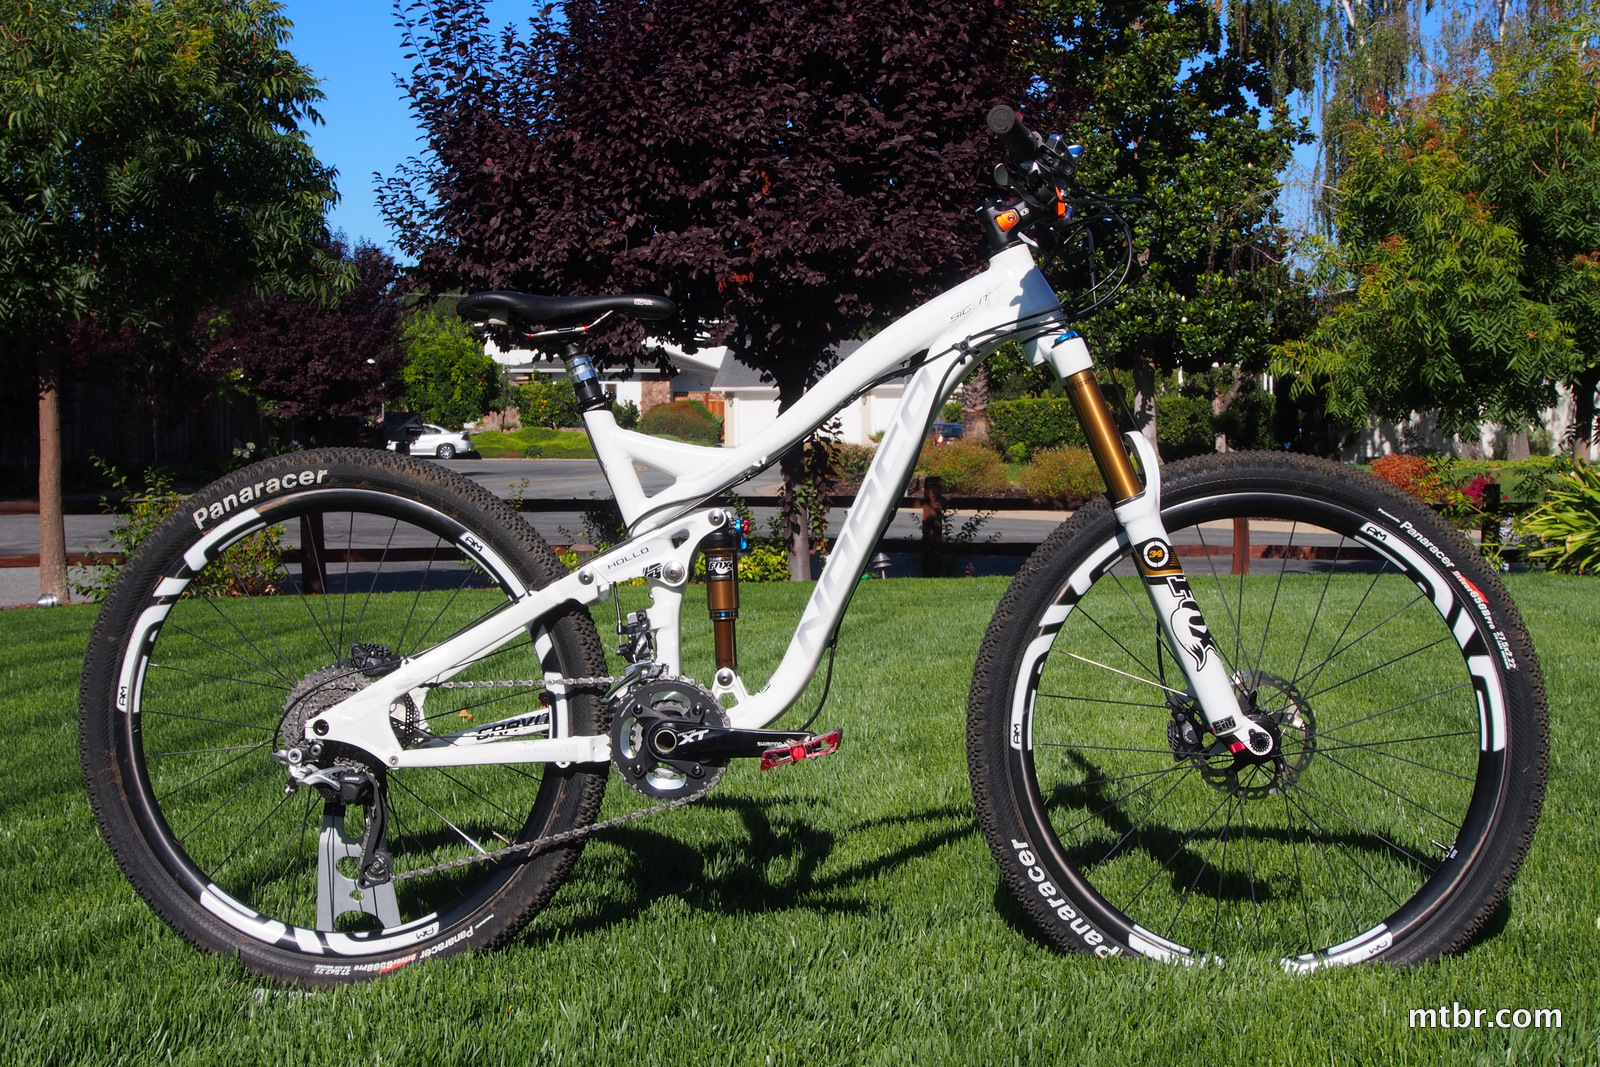 Norco Sight 27.5 with 140 mm travel